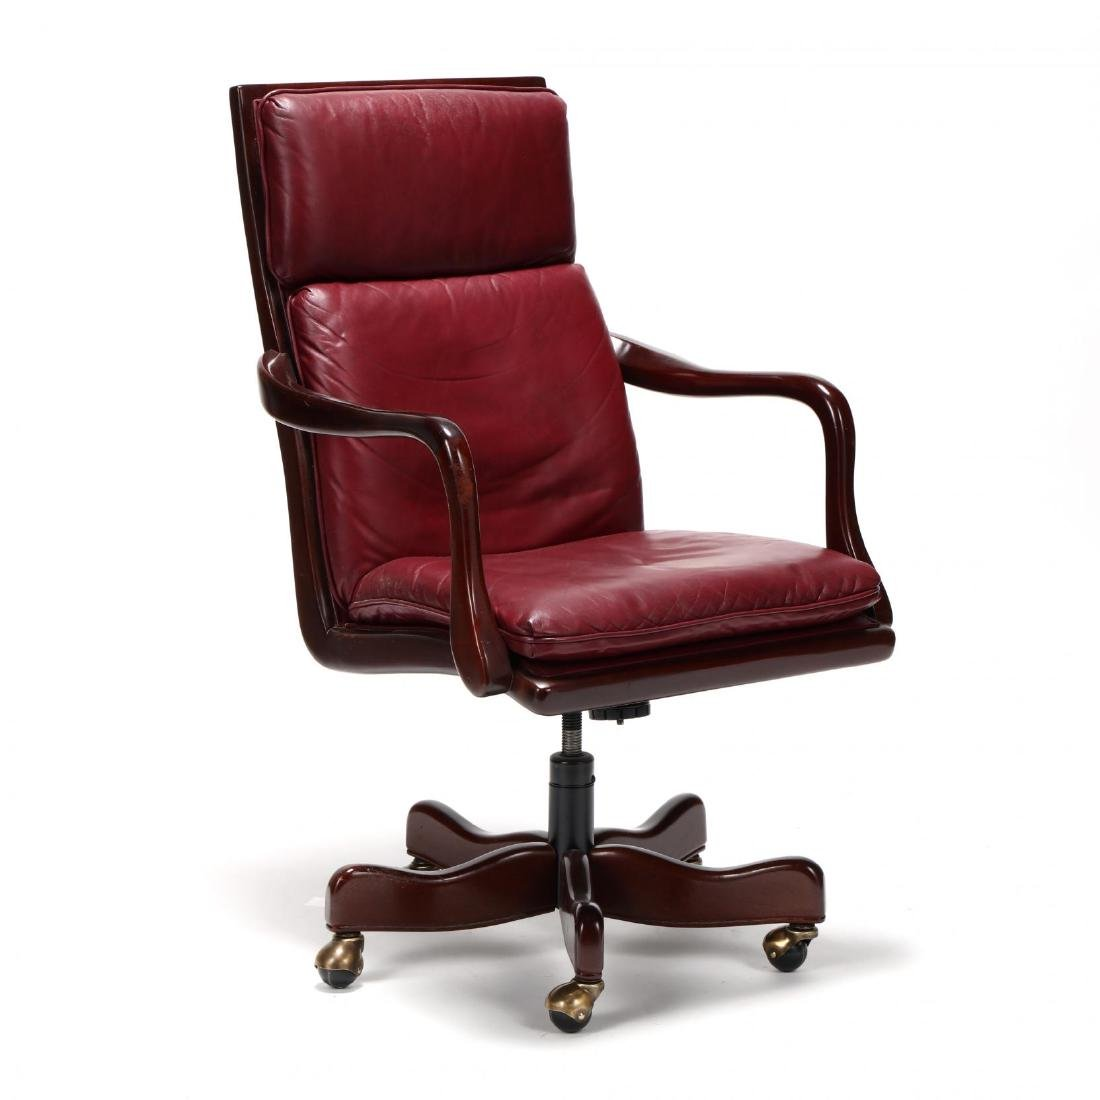 Hancock & Moore, Queen Anne Style Leather Office Chair